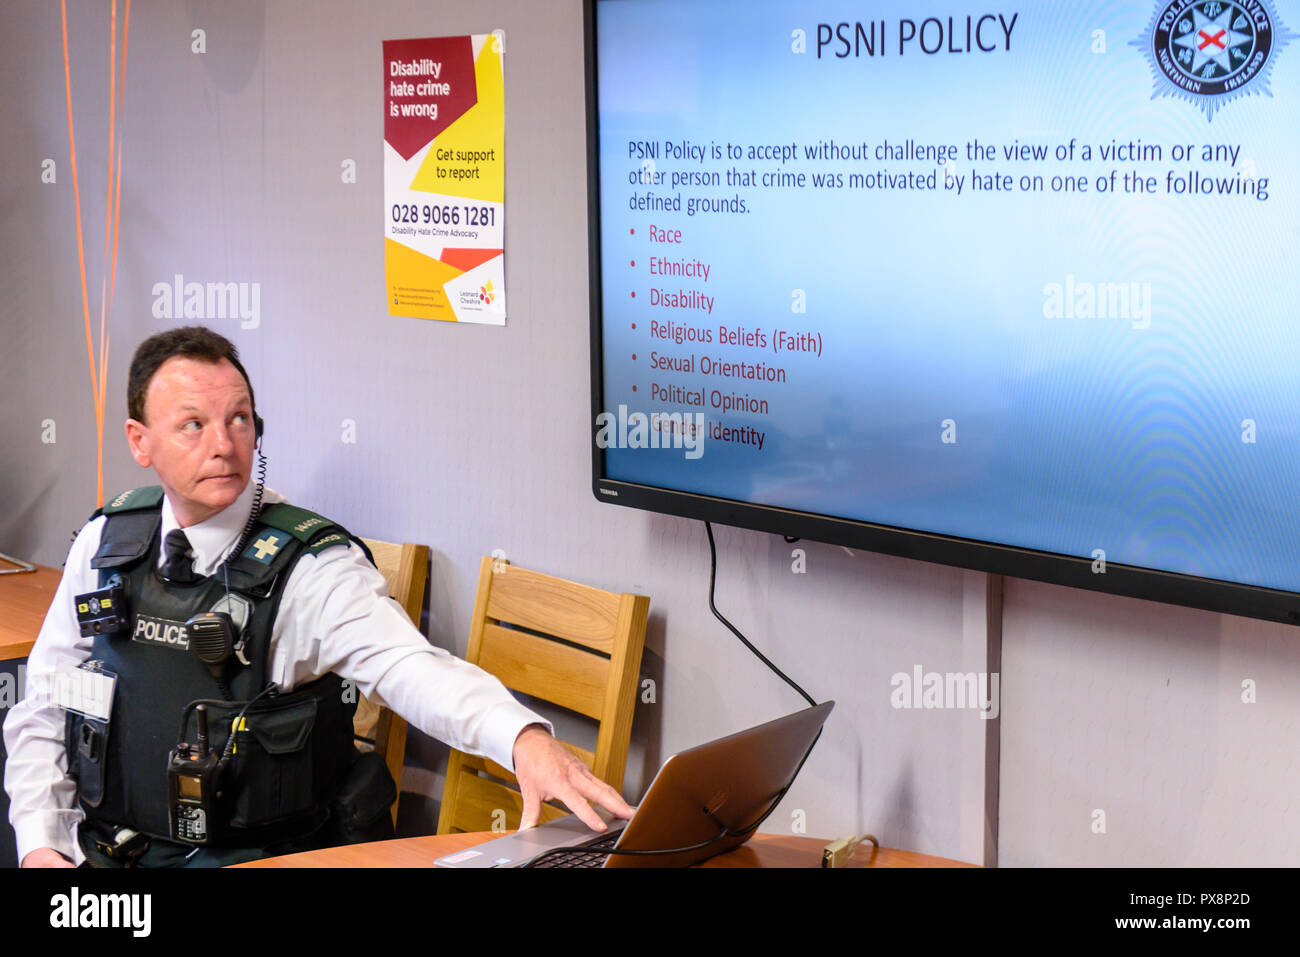 Belfast, Northern Ireland. 16/10/2016 - A police officer delivers a presentation on Hate crime awareness. - Stock Image